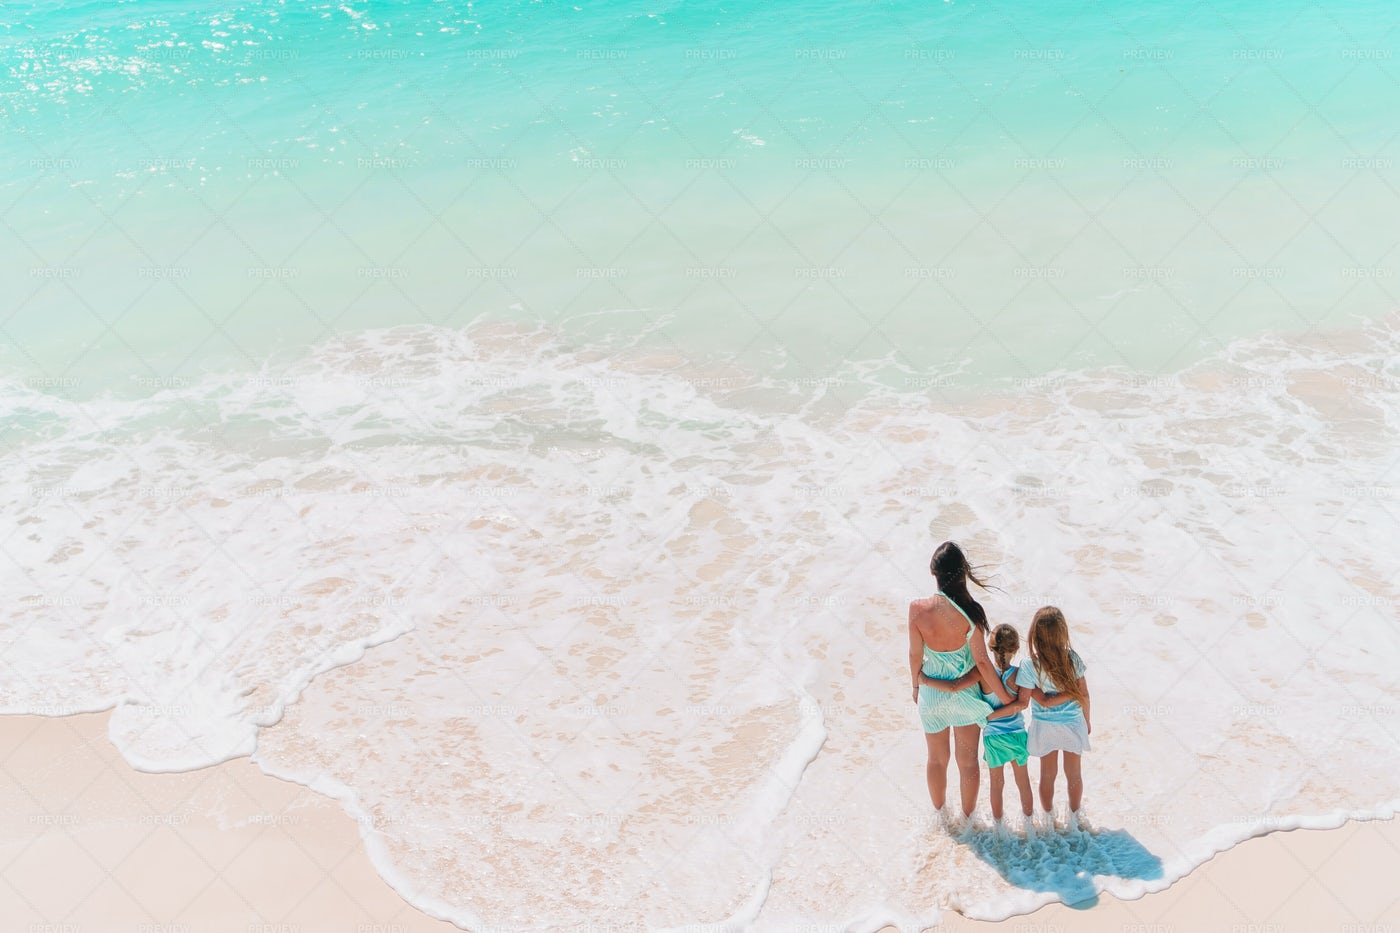 Aerial View Of Family At The Beach: Stock Photos